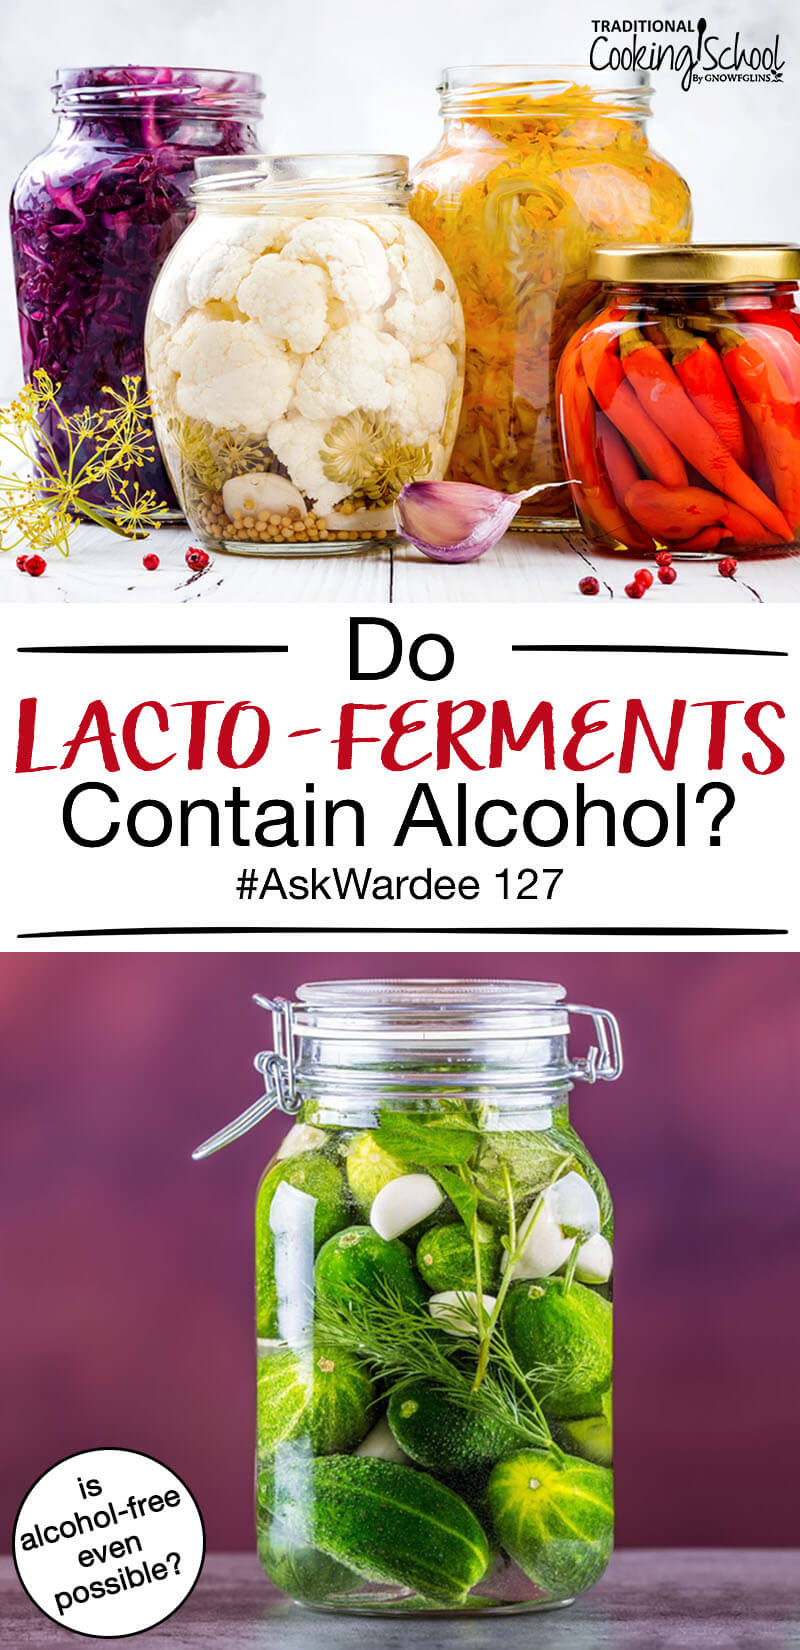 "photo collage of large jars of fermented foods, including sauerkraut and pickles, with text overlay: ""Do Lacto-Ferments Contain Alcohol? #AskWardee 127 (is alcohol-free even possible?)"""